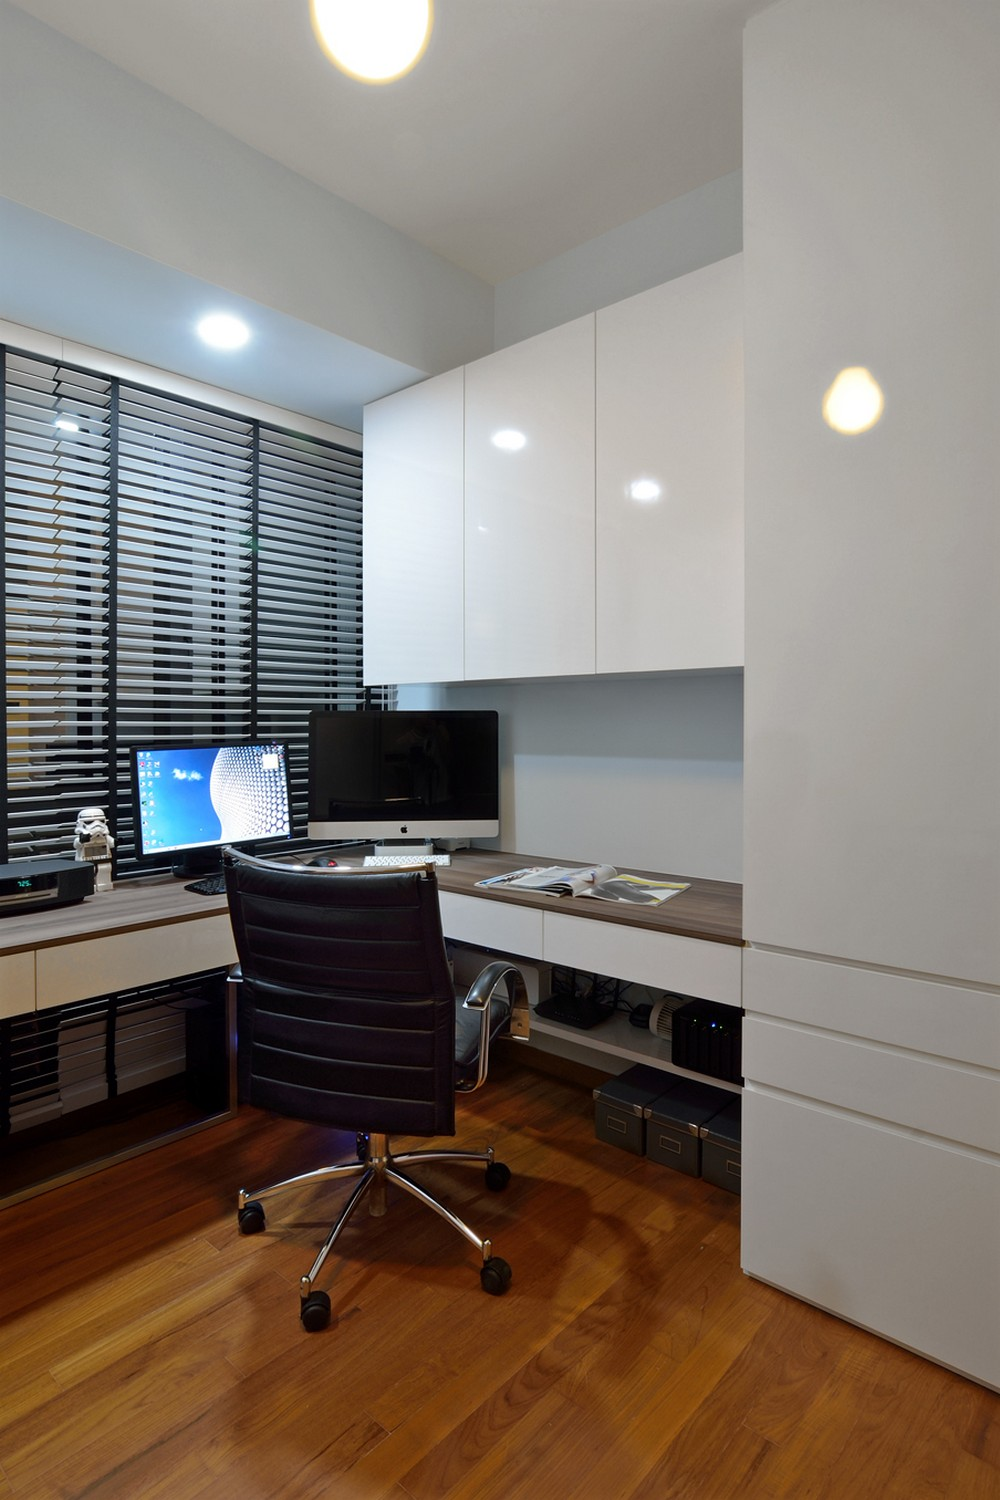 Awesome Minimalist Apartment Design The Beauty of